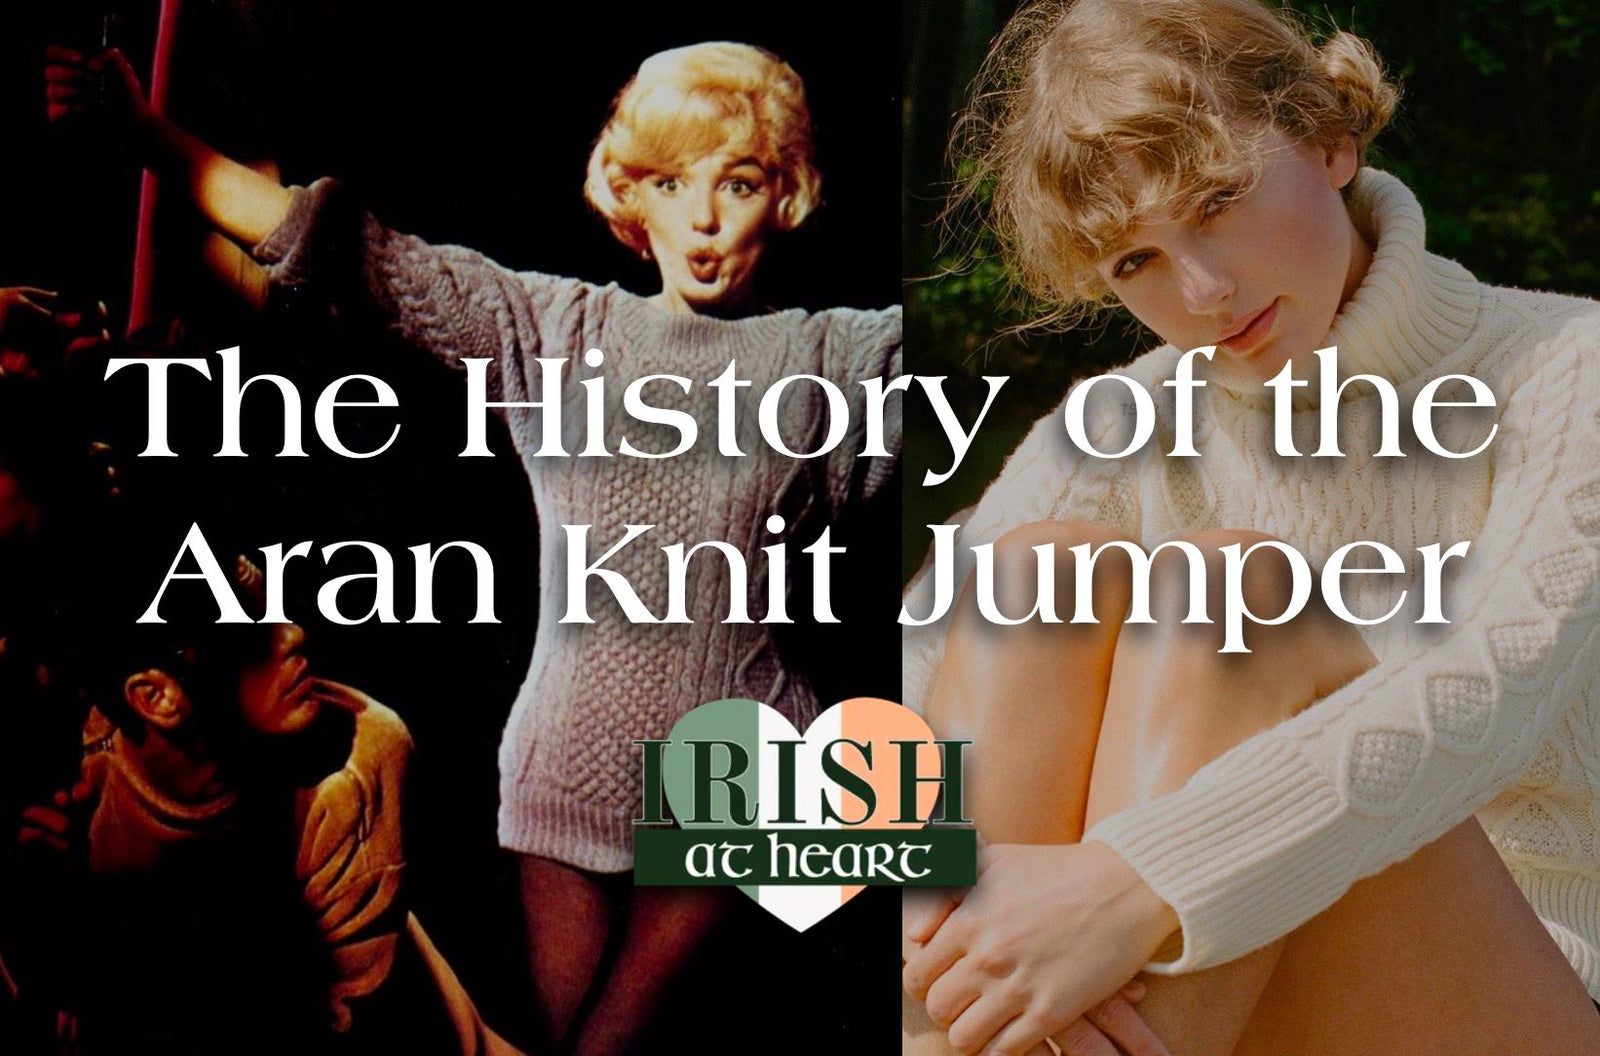 The History of the Aran Knit Jumper